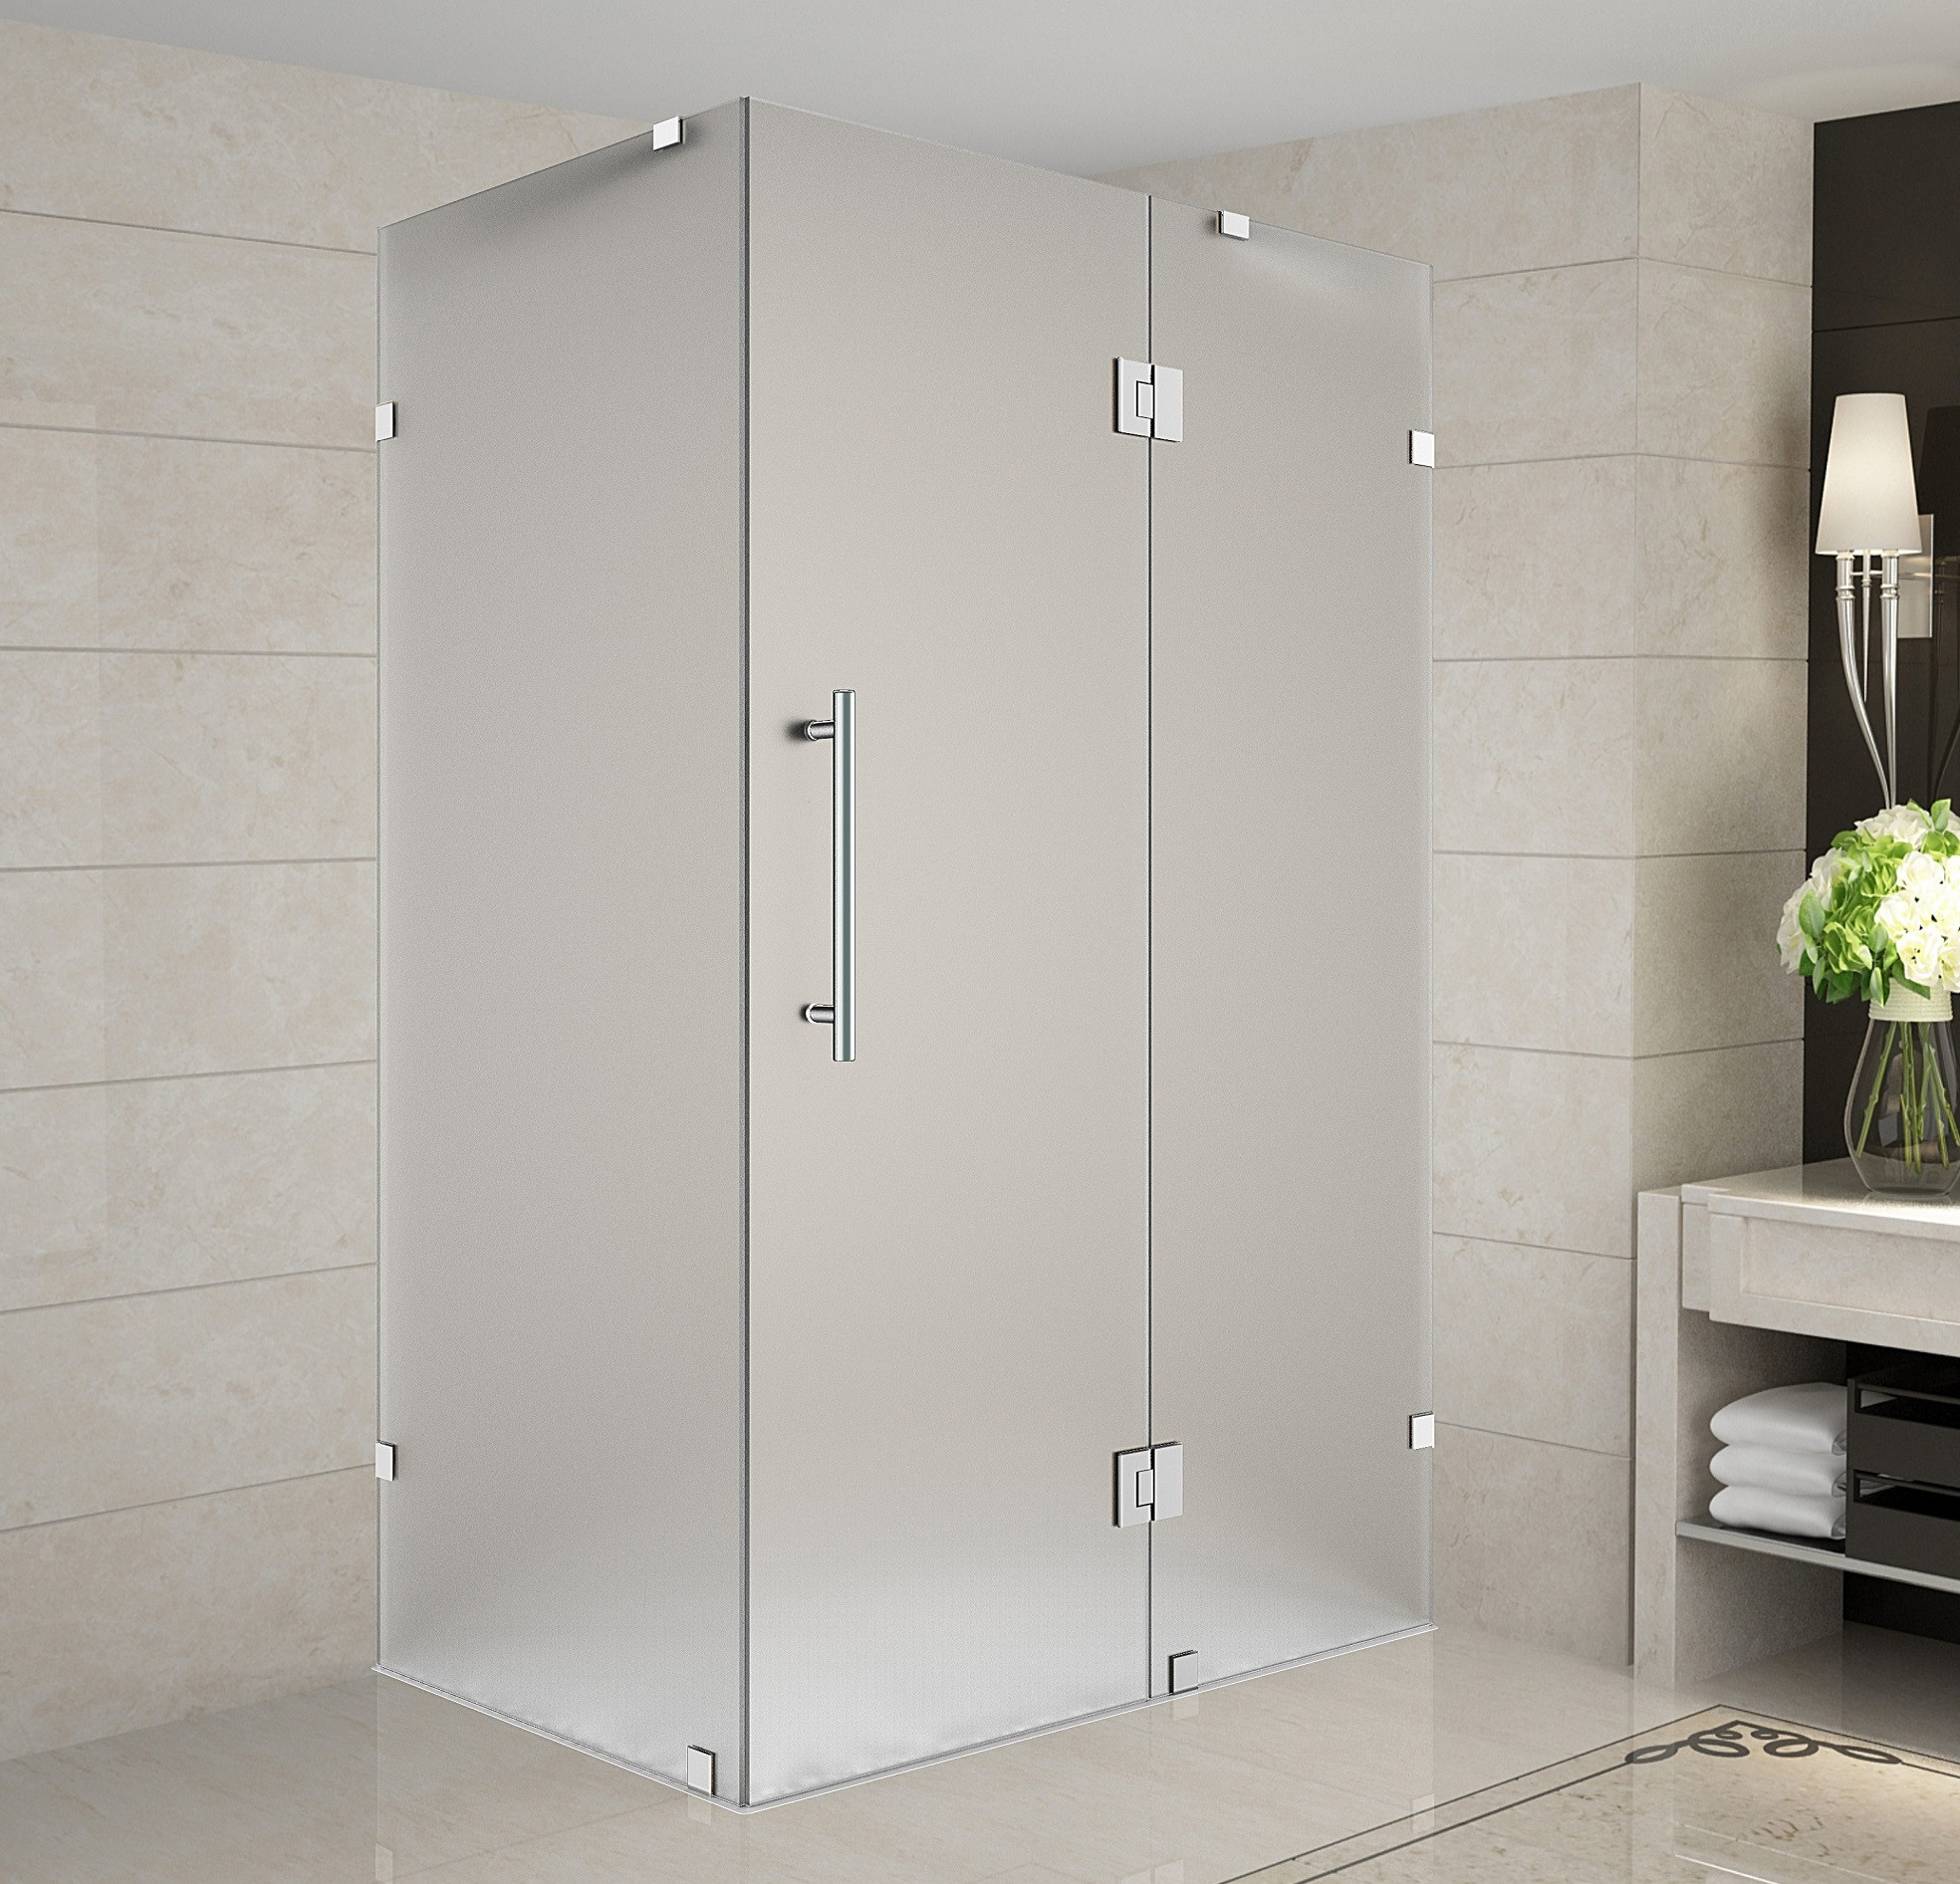 Aston Global SEN987F-SS-3232-10 Frameless Frosted Glass Shower Enclosure In Stainless Steel